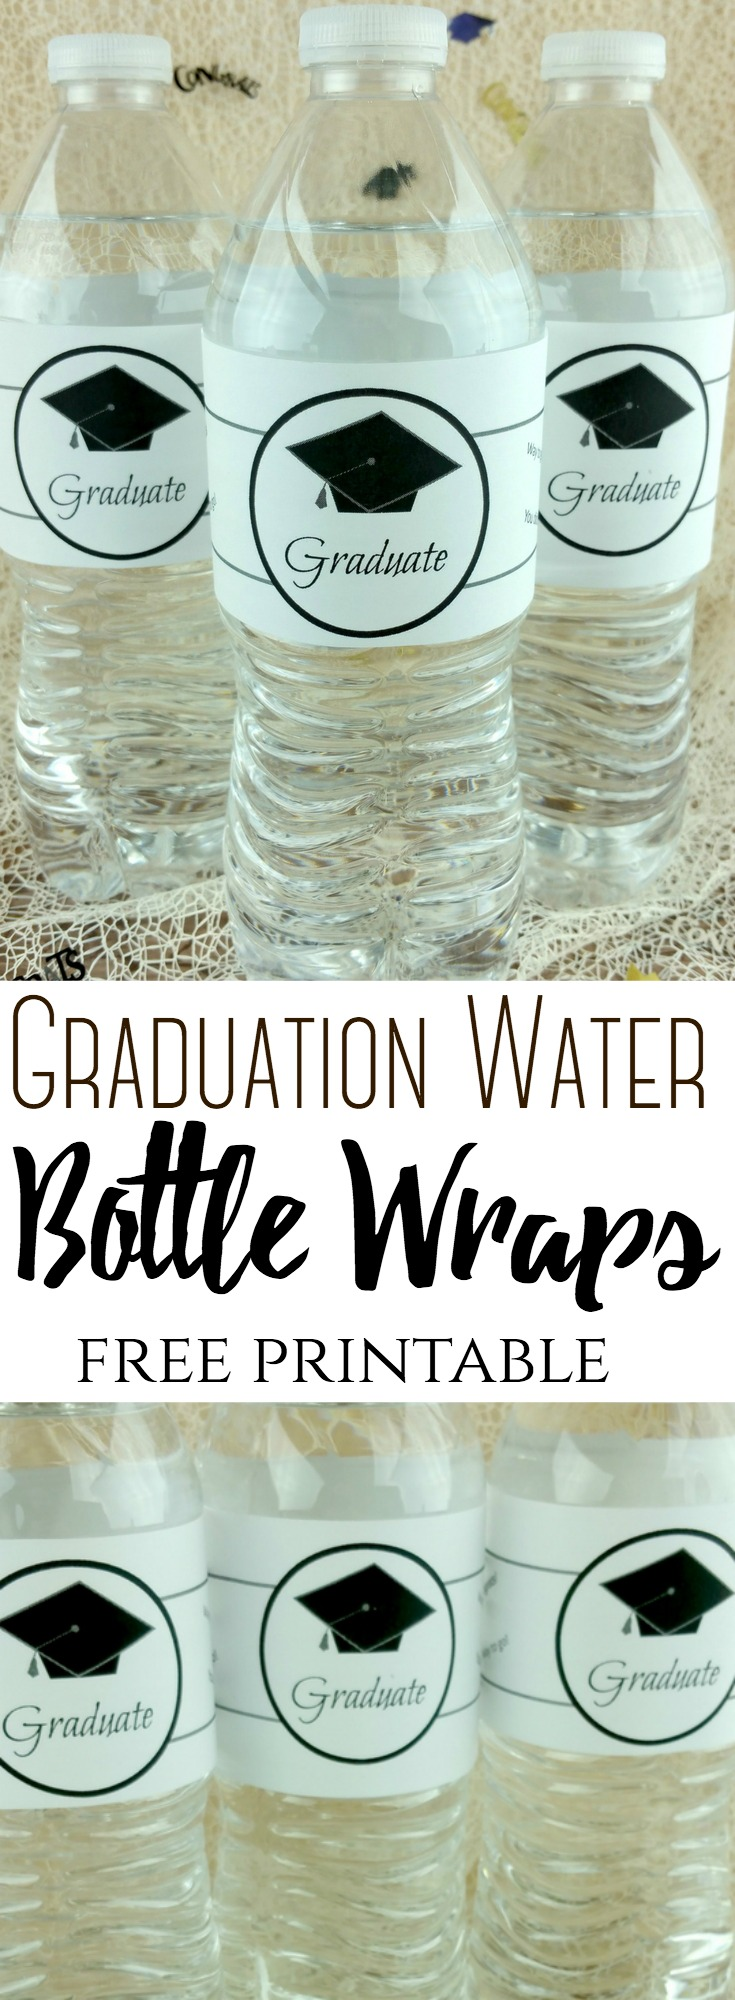 Graduation Water Bottle Wraps (Free printable label) #graduation #label #printable #gradparty #graduationparty #waterbottle #budget #inexpensive